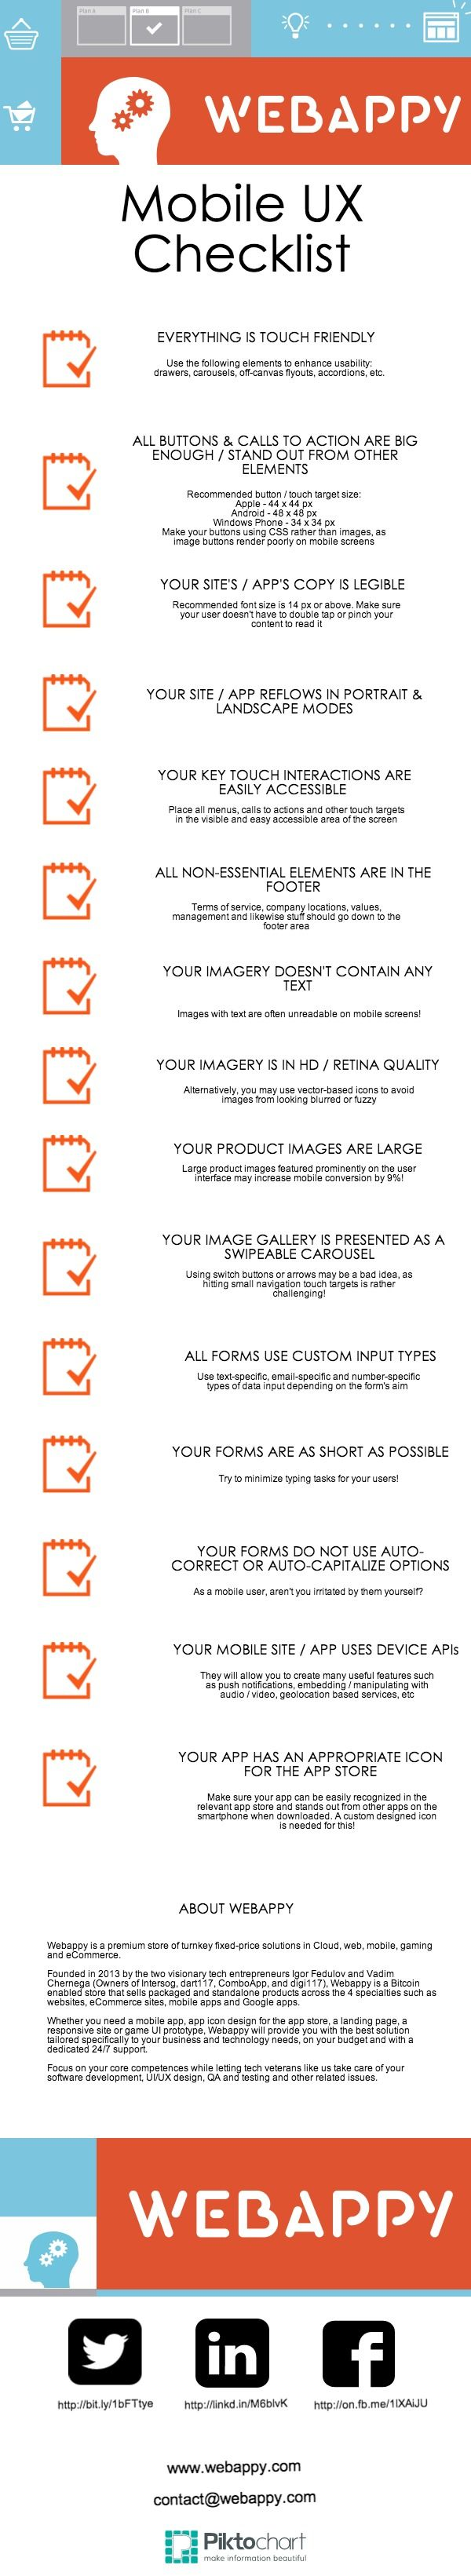 Mobile UX Checklist #infographic